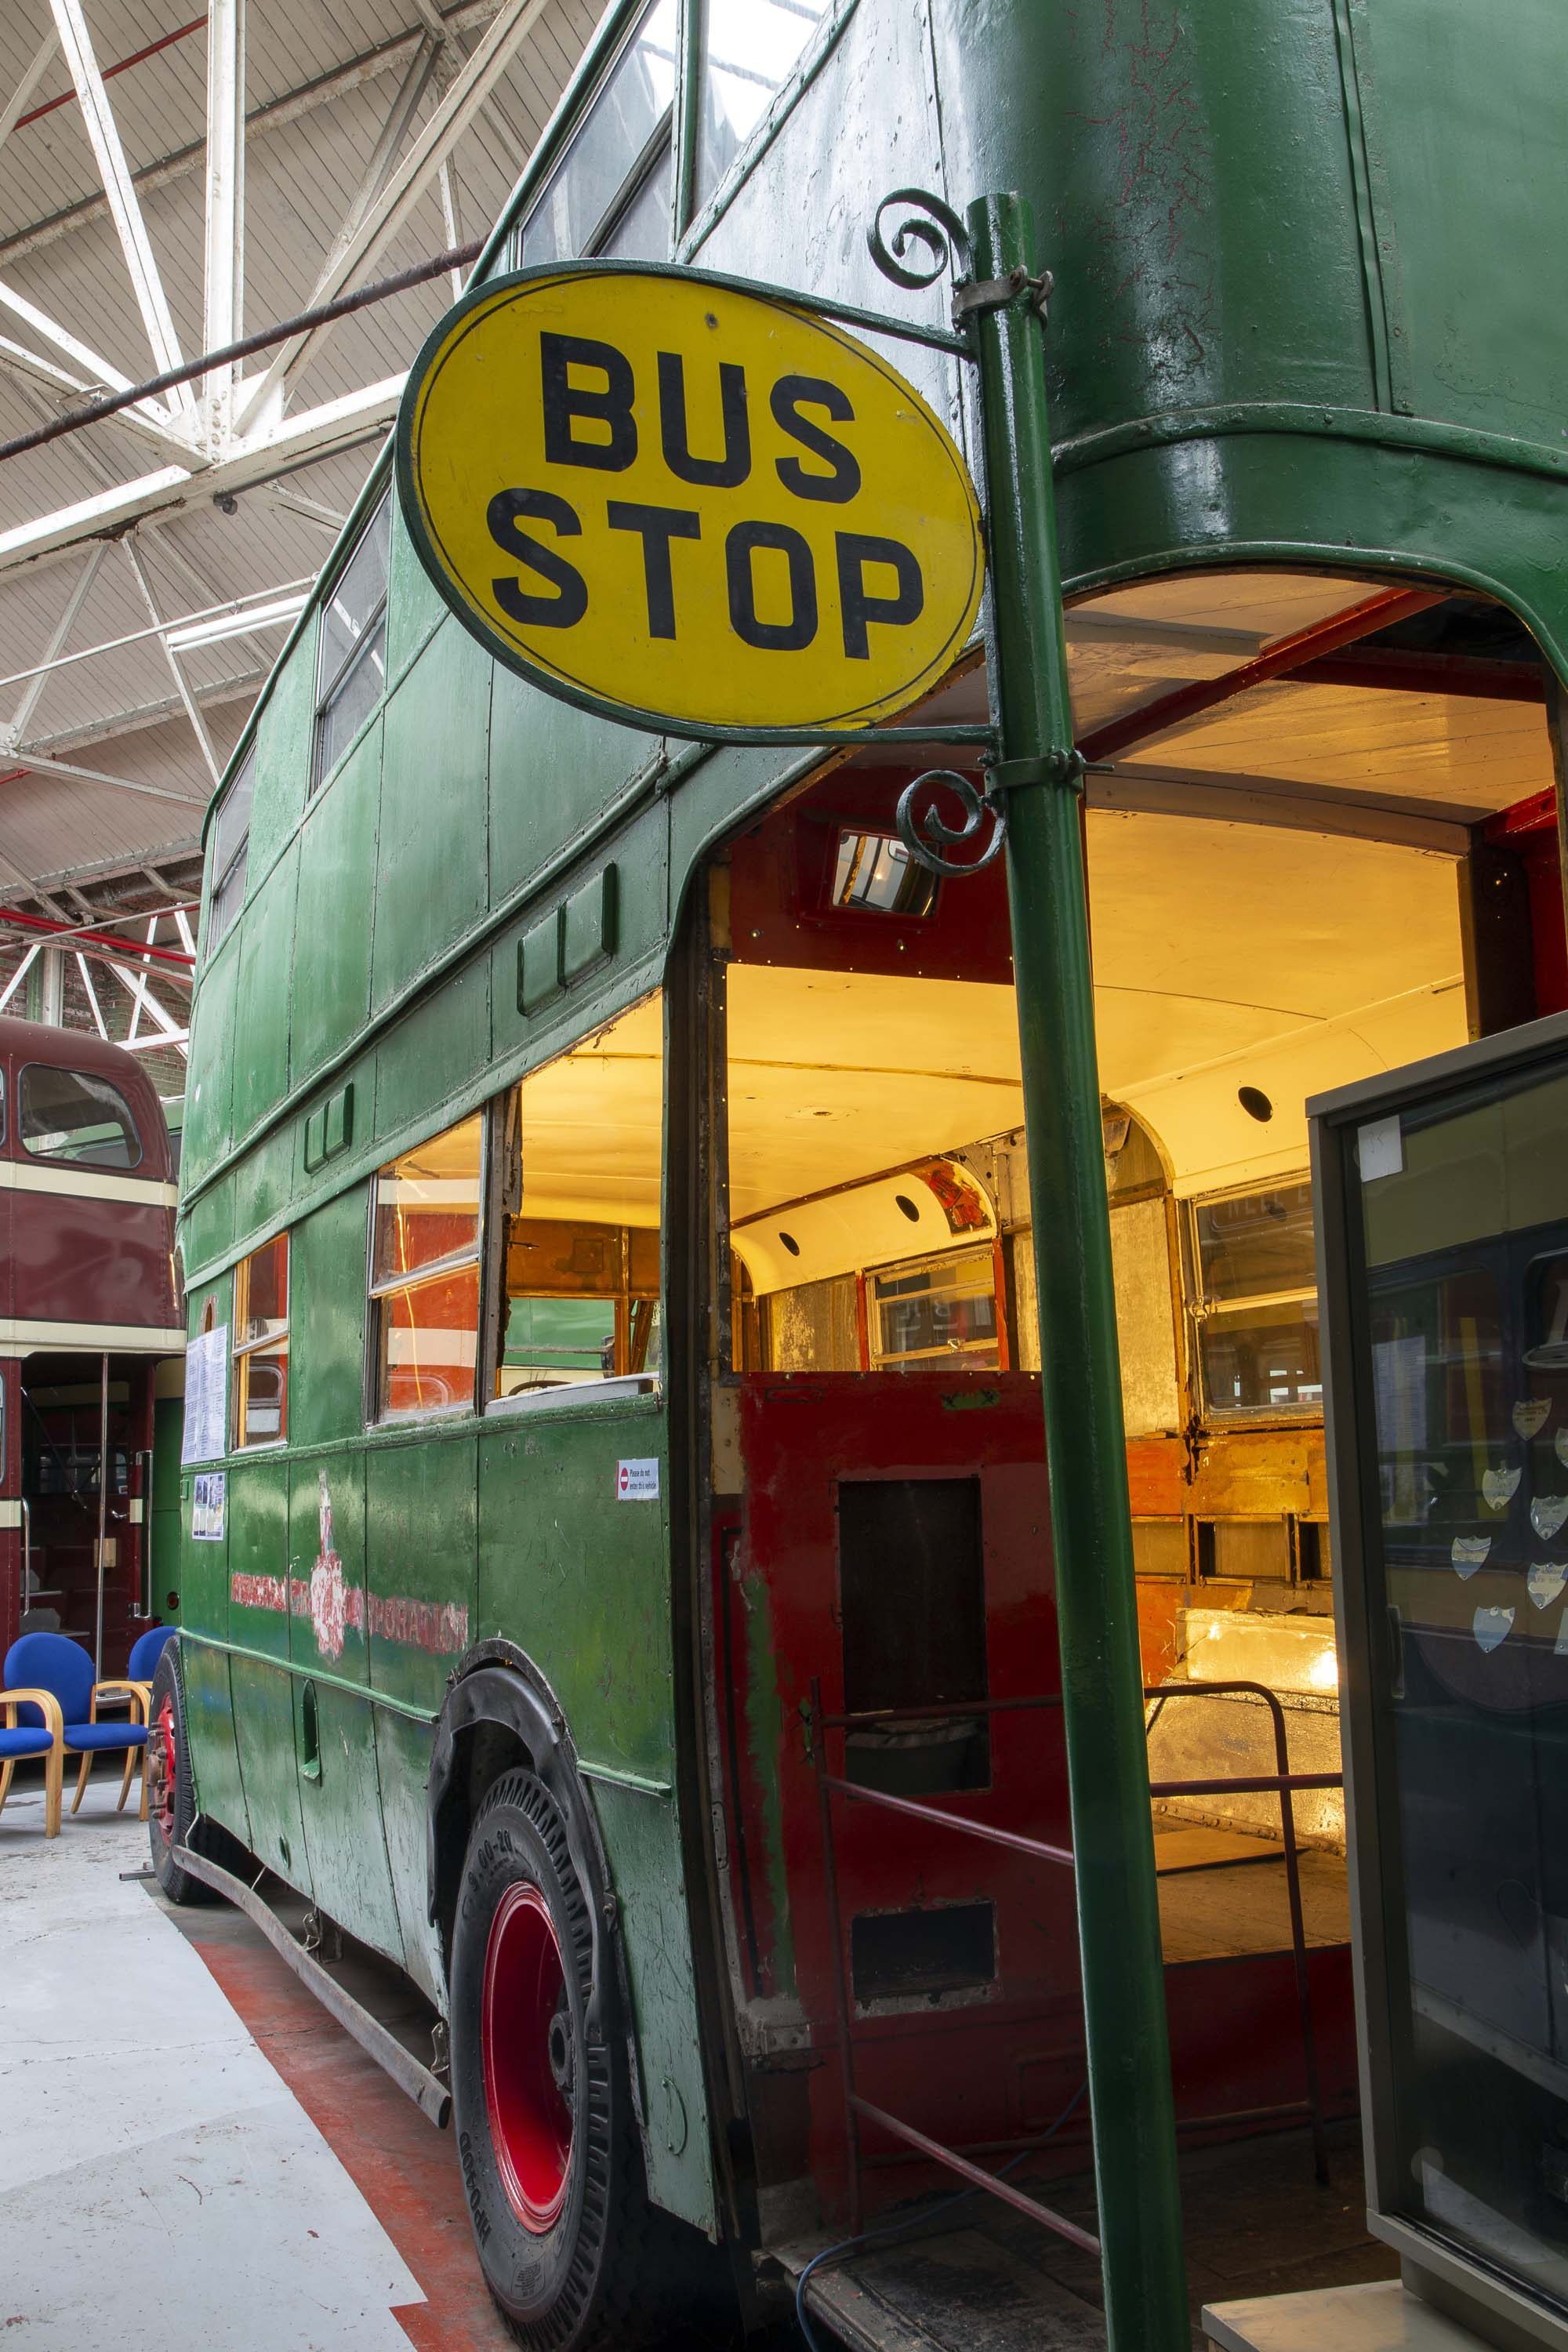 a photo of a dounel decker bus parked in a large warehouse seen from the back entrance